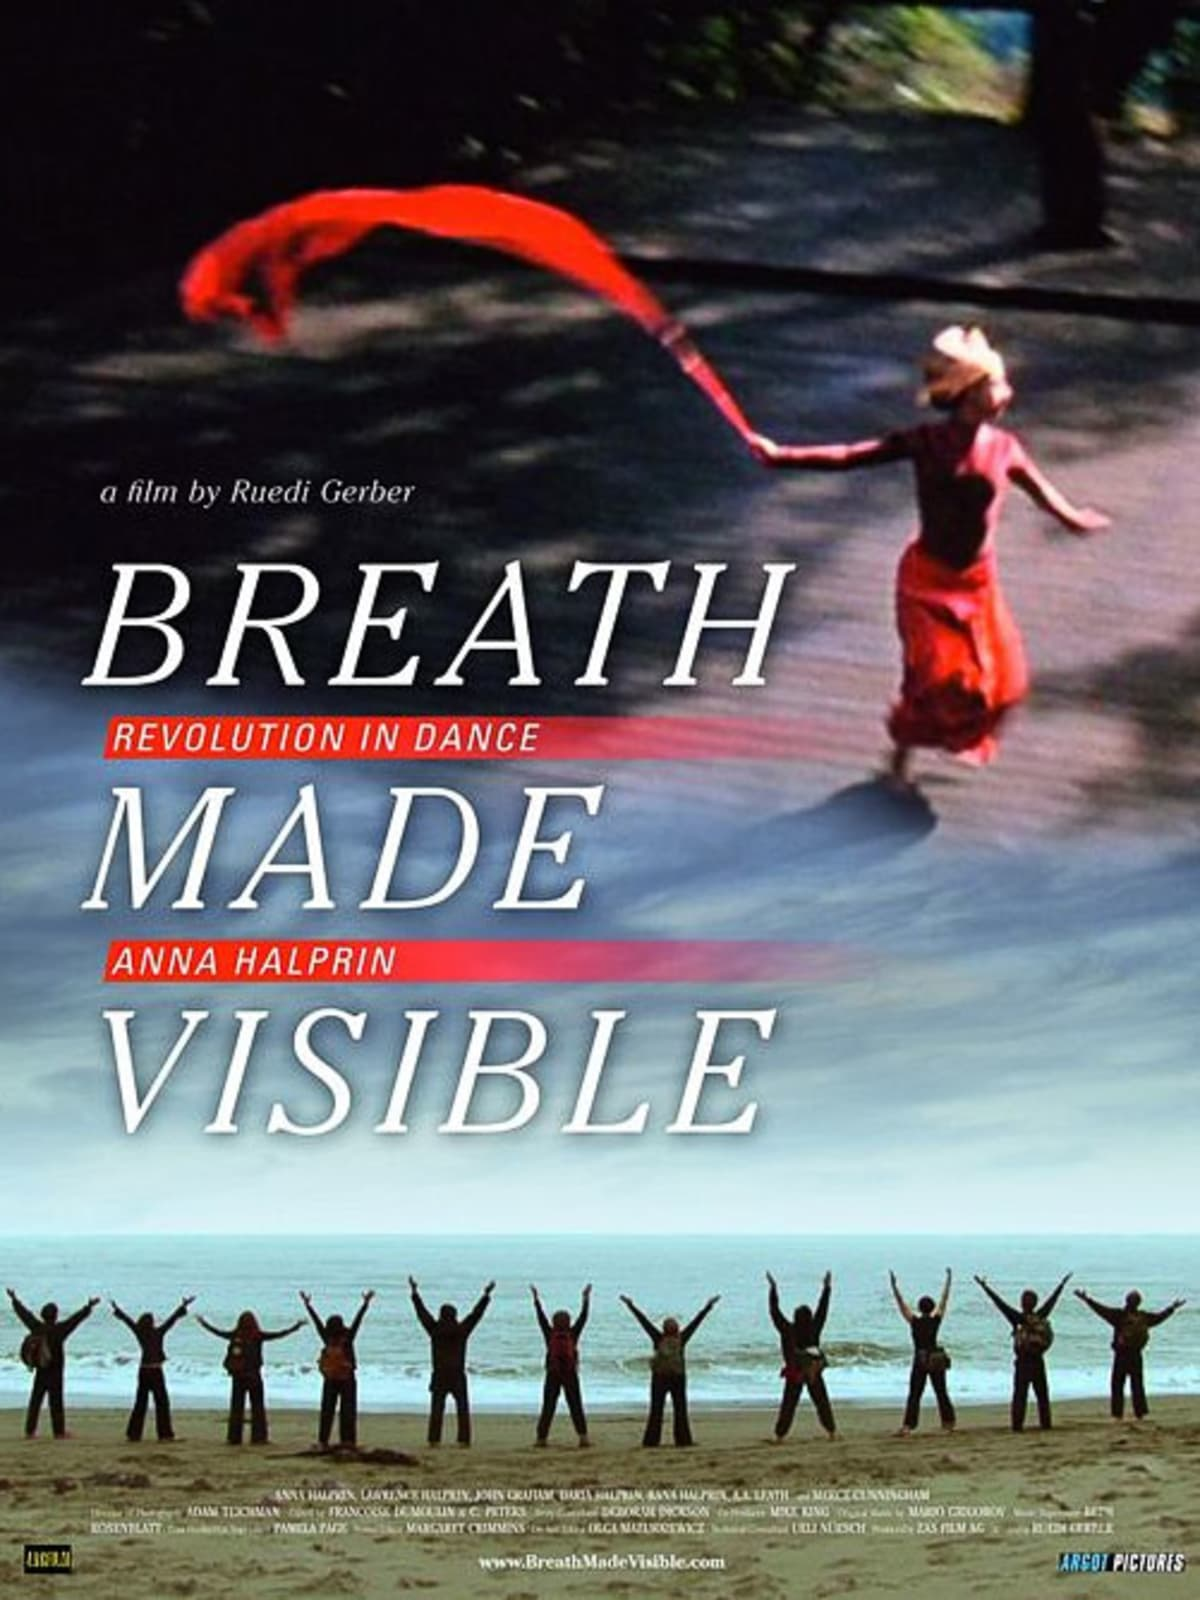 News_Nancy Wozny_Breath Made Visible_movie poster